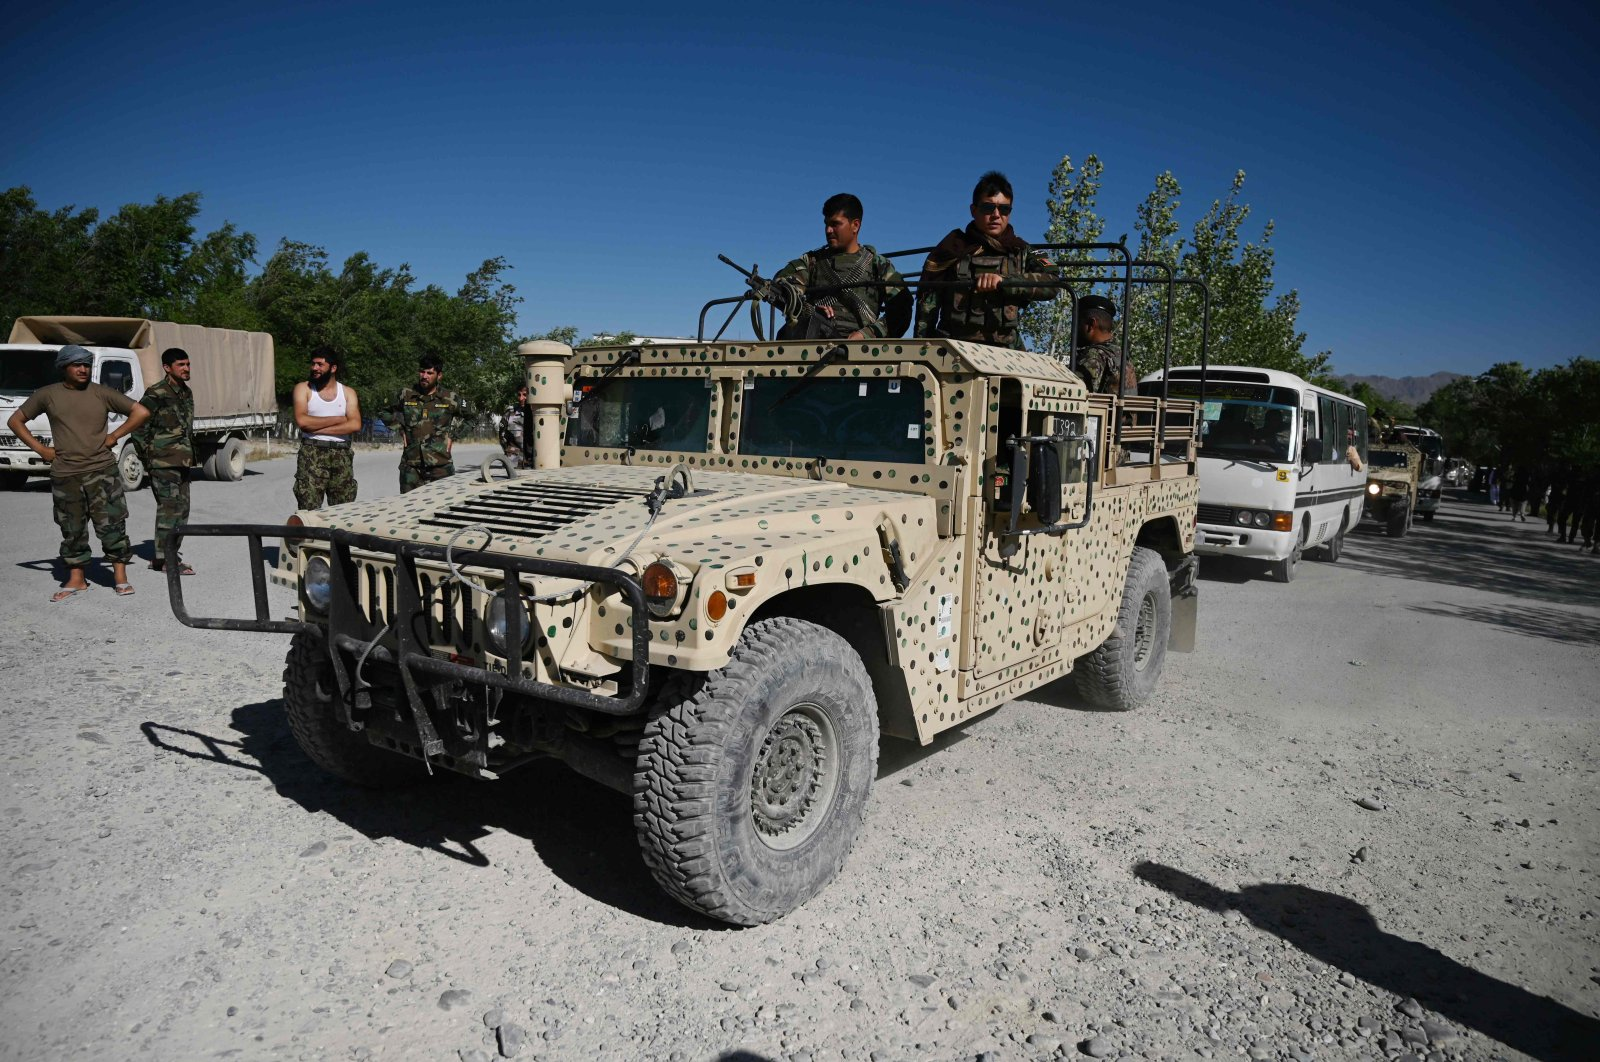 Afghan National Army (ANA) soldier escorts Taliban prisoners convoy during their release from the Bagram prison, in outside of the US military base in Bagram, some 50 km north of Kabul on May 26, 2020. (AFP Photo)